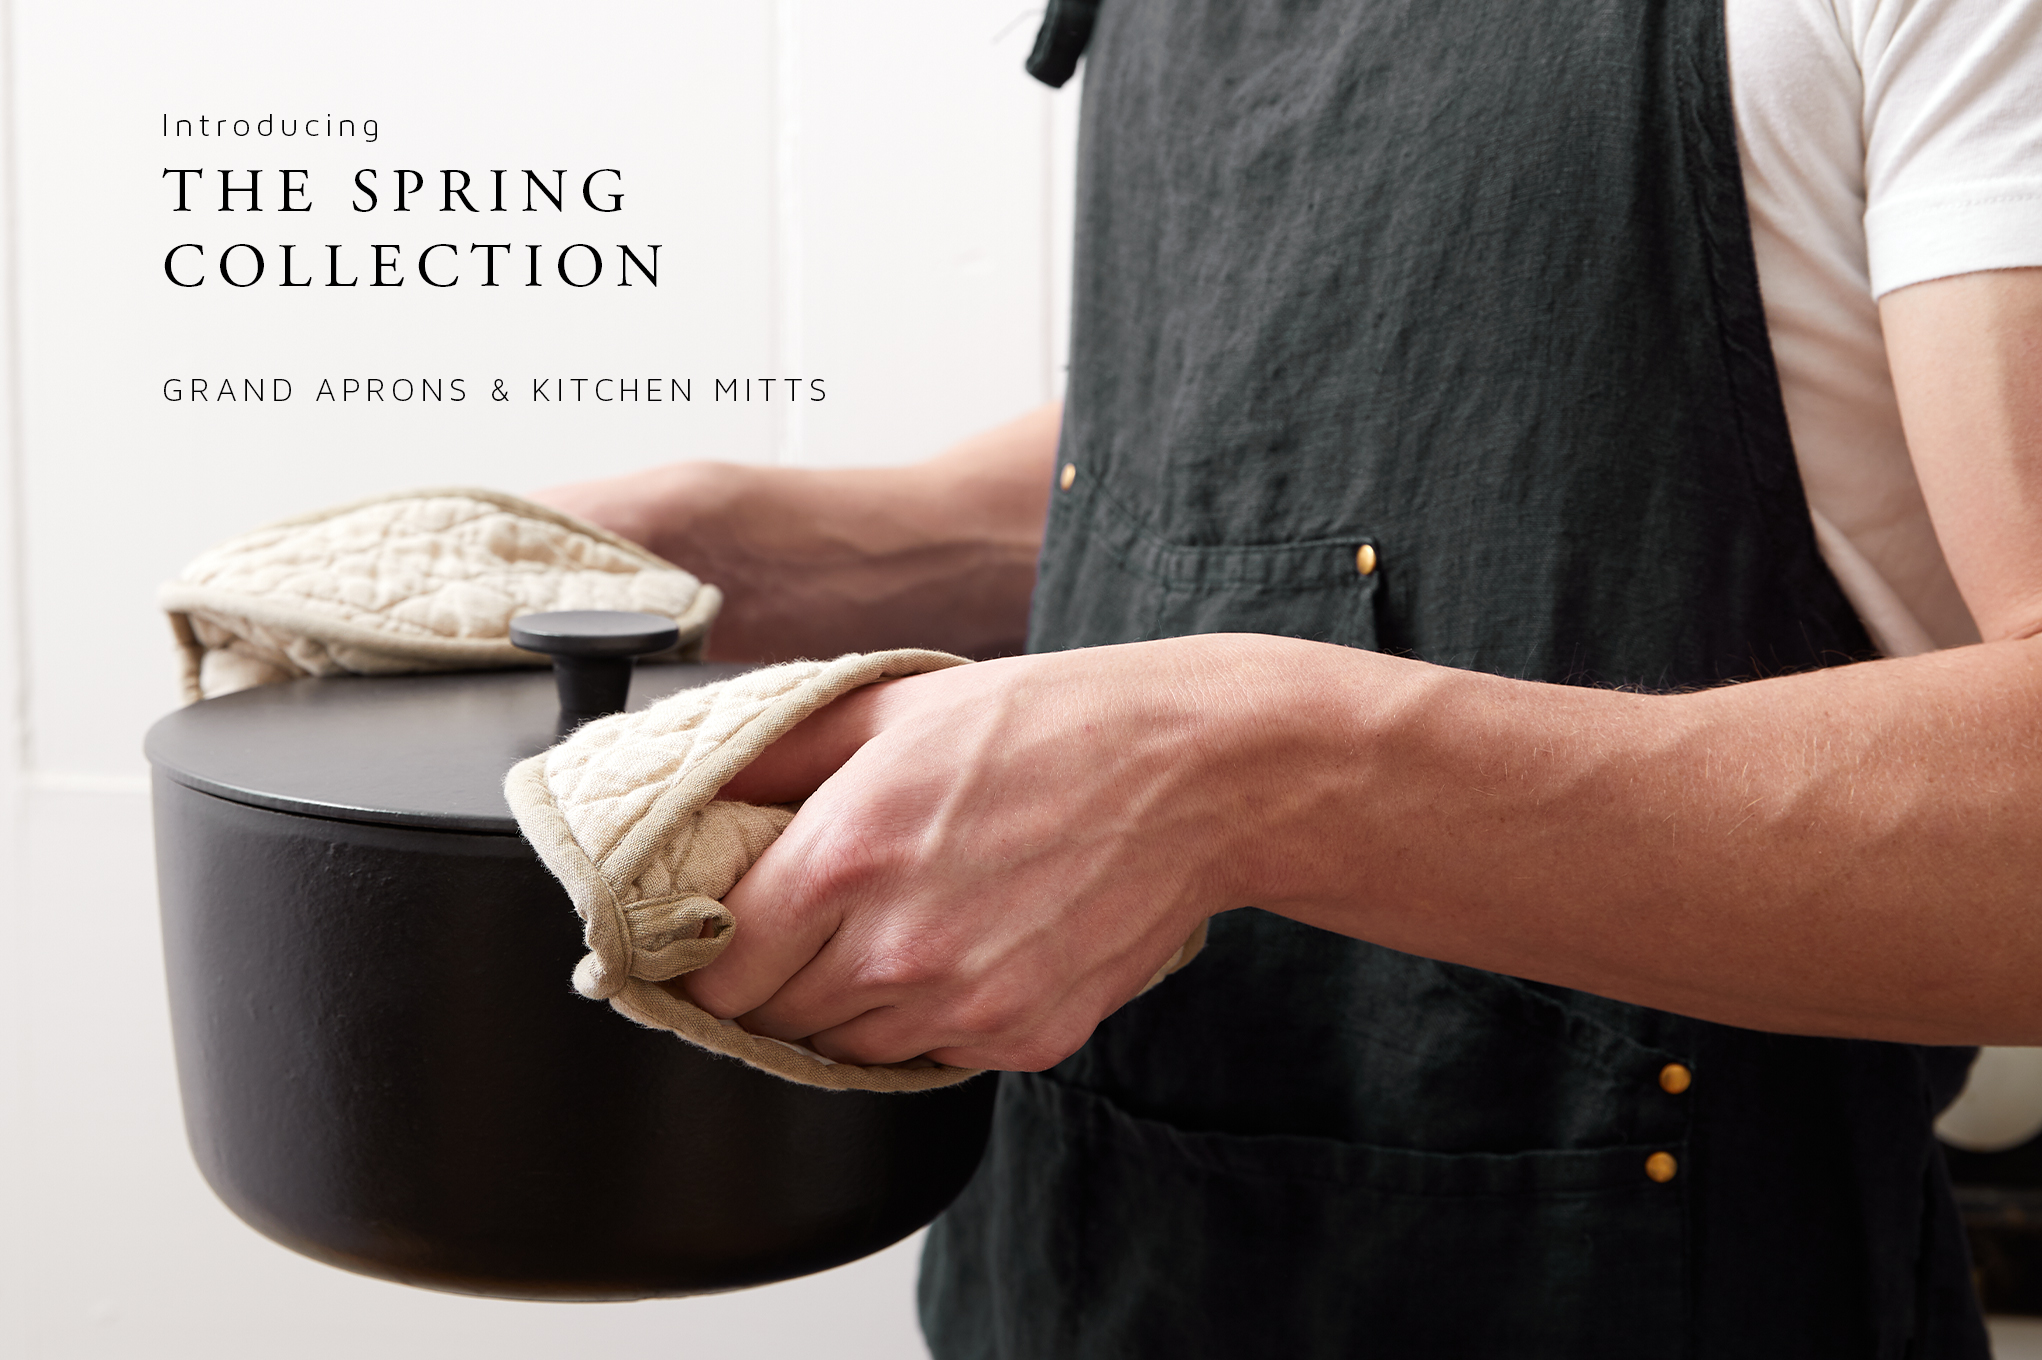 Introducing the Spring Collection: Grand Aprons & Kitchen Mitts